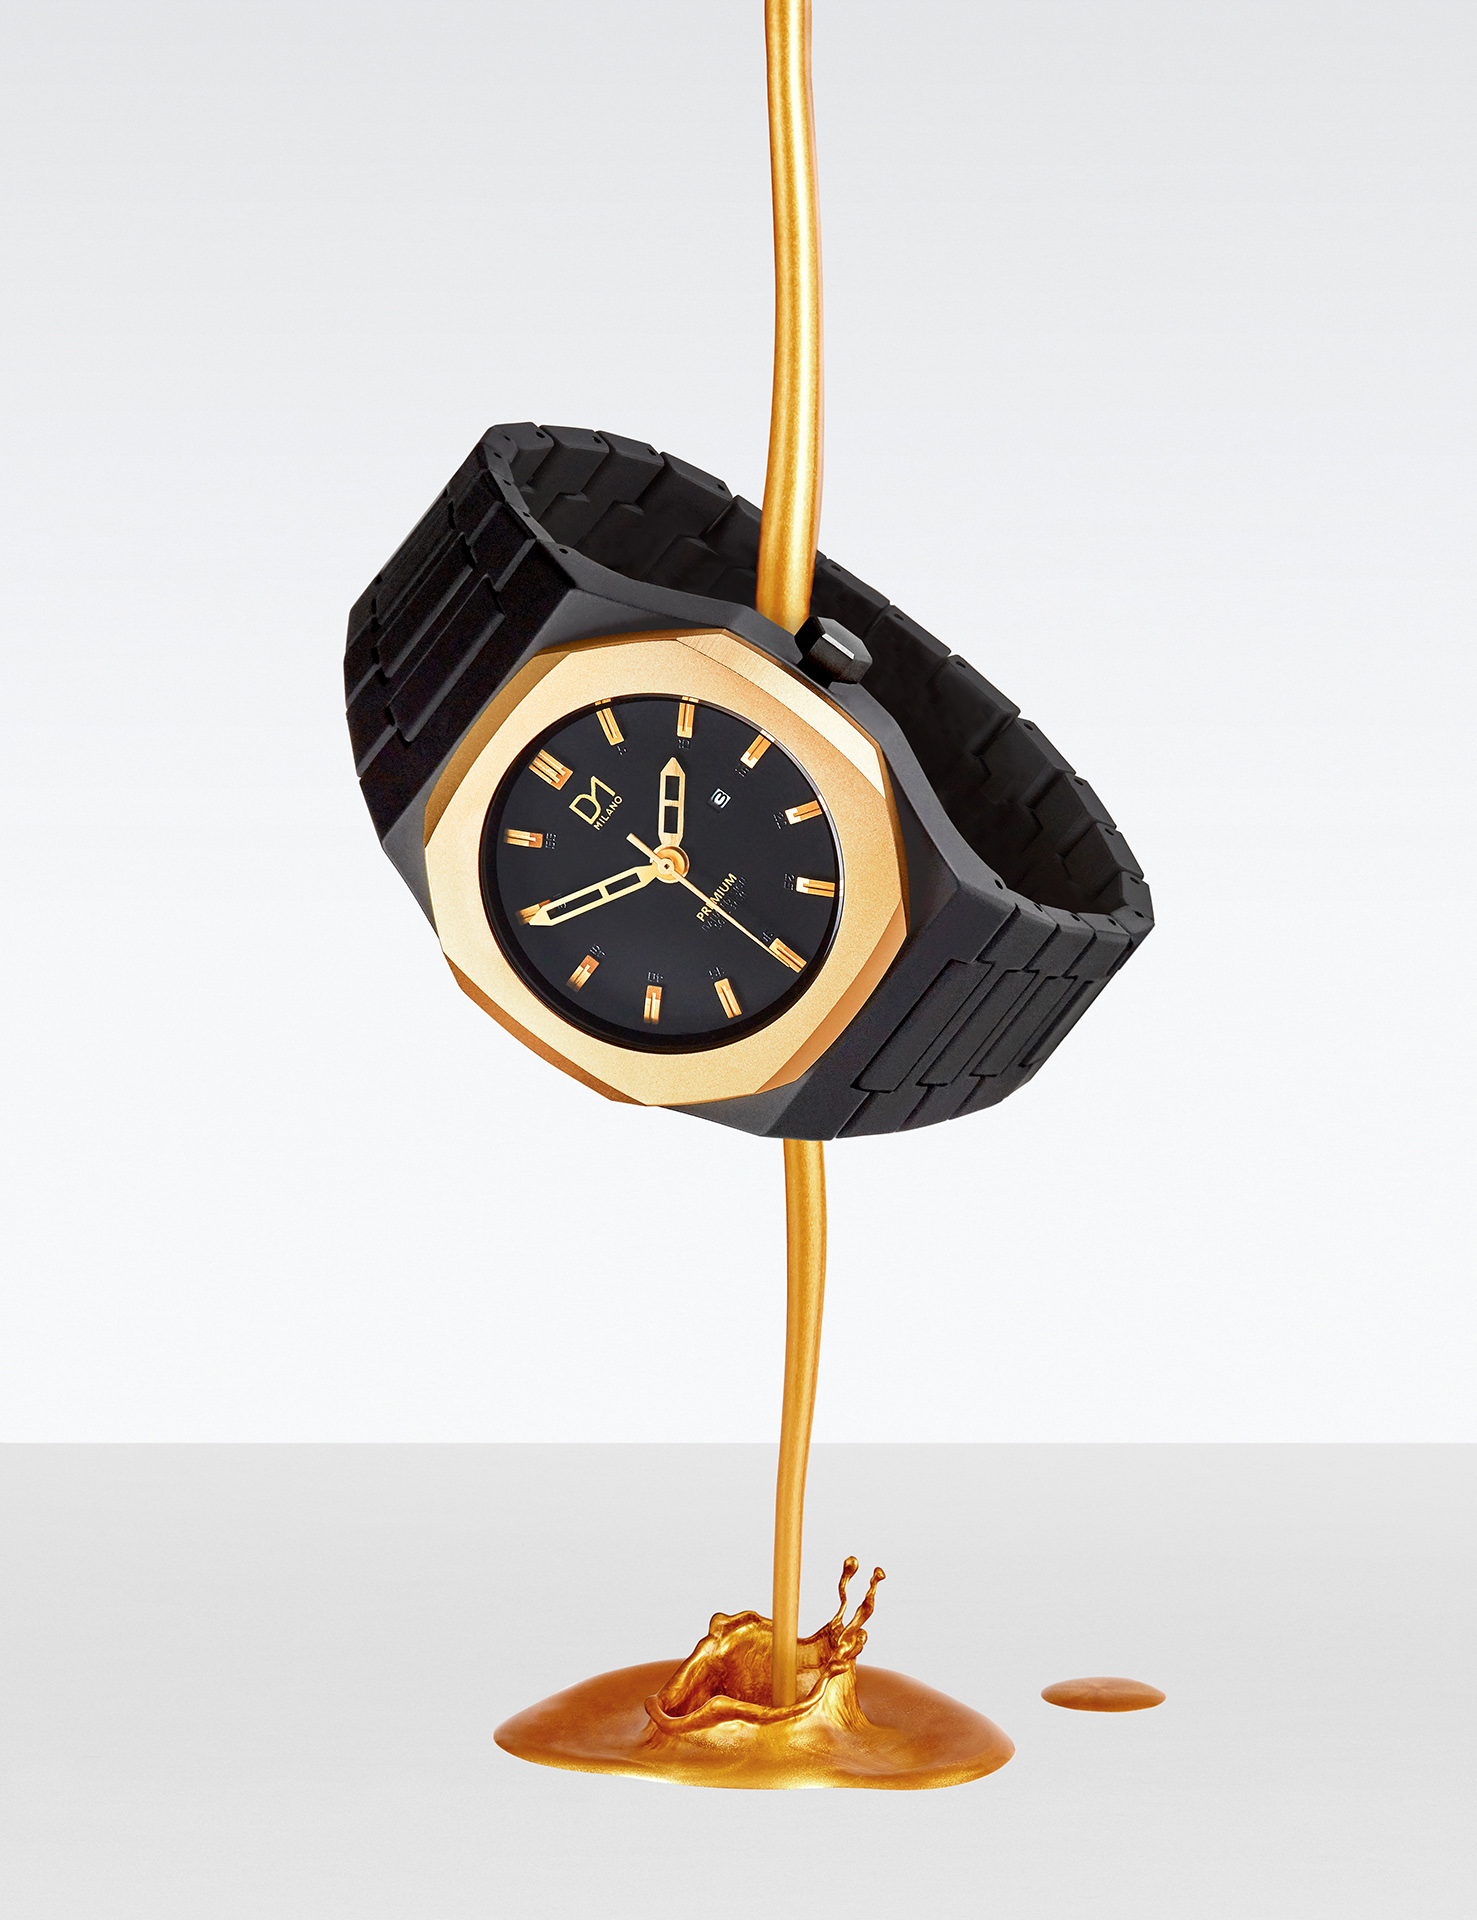 gold watch d1 milano timepiece creative still life photography london photographer